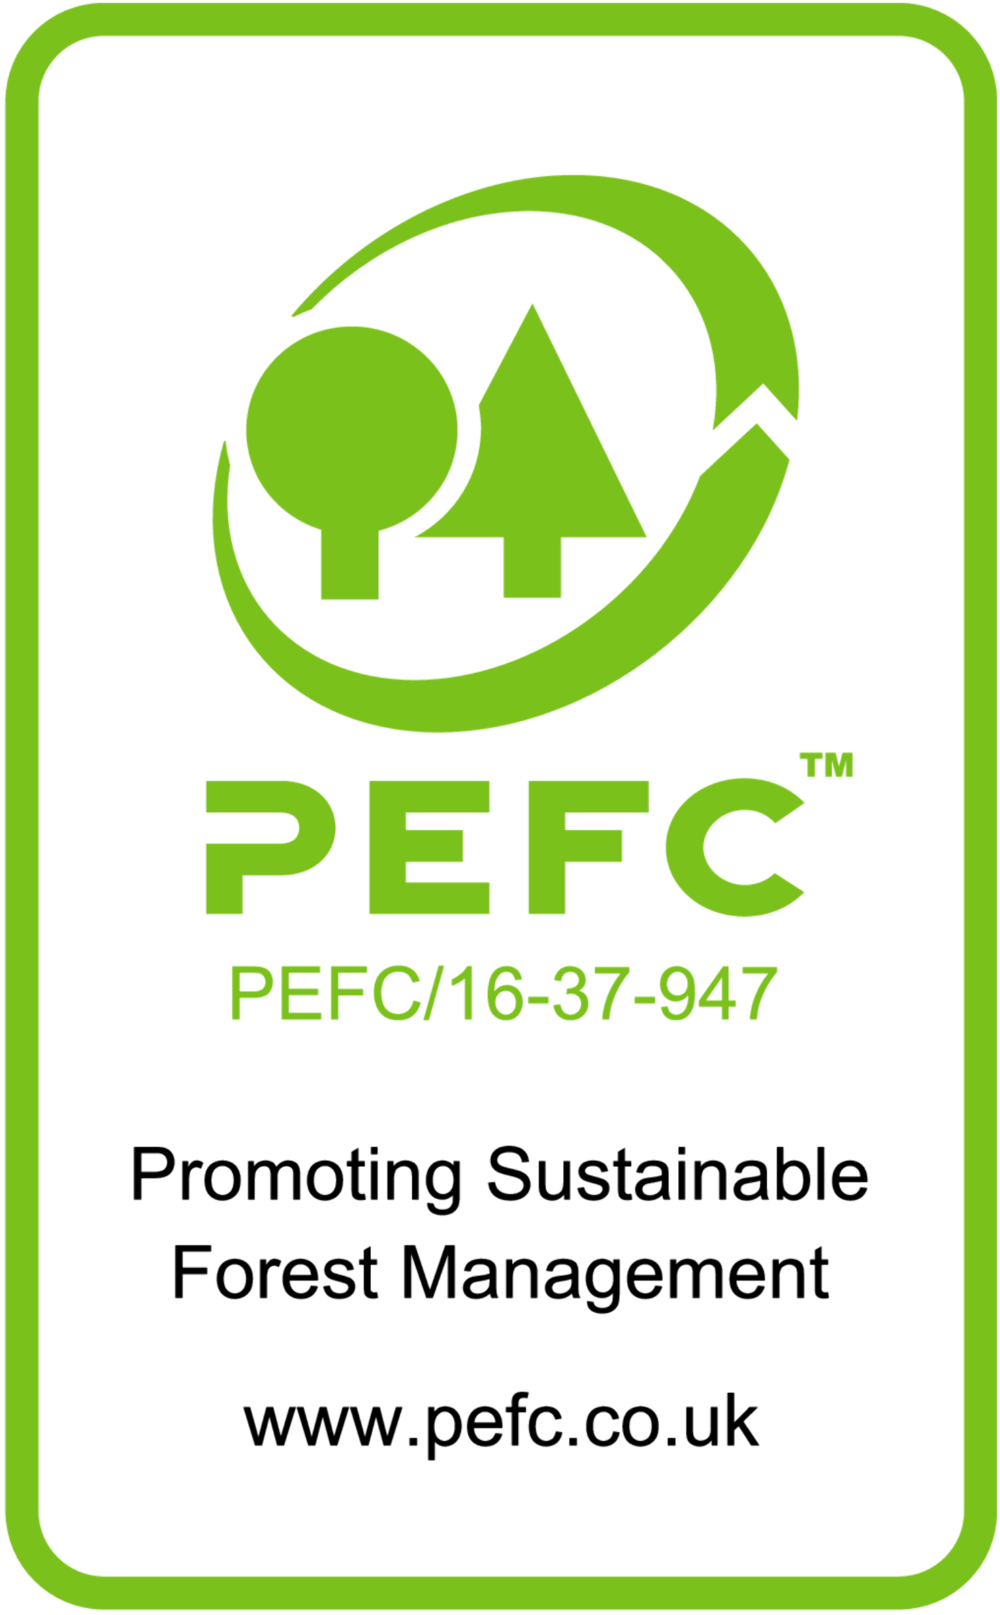 https://hardwoodsgroup.com/wp-content/uploads/2019/11/PEFC-Certified-e1574084196770.png